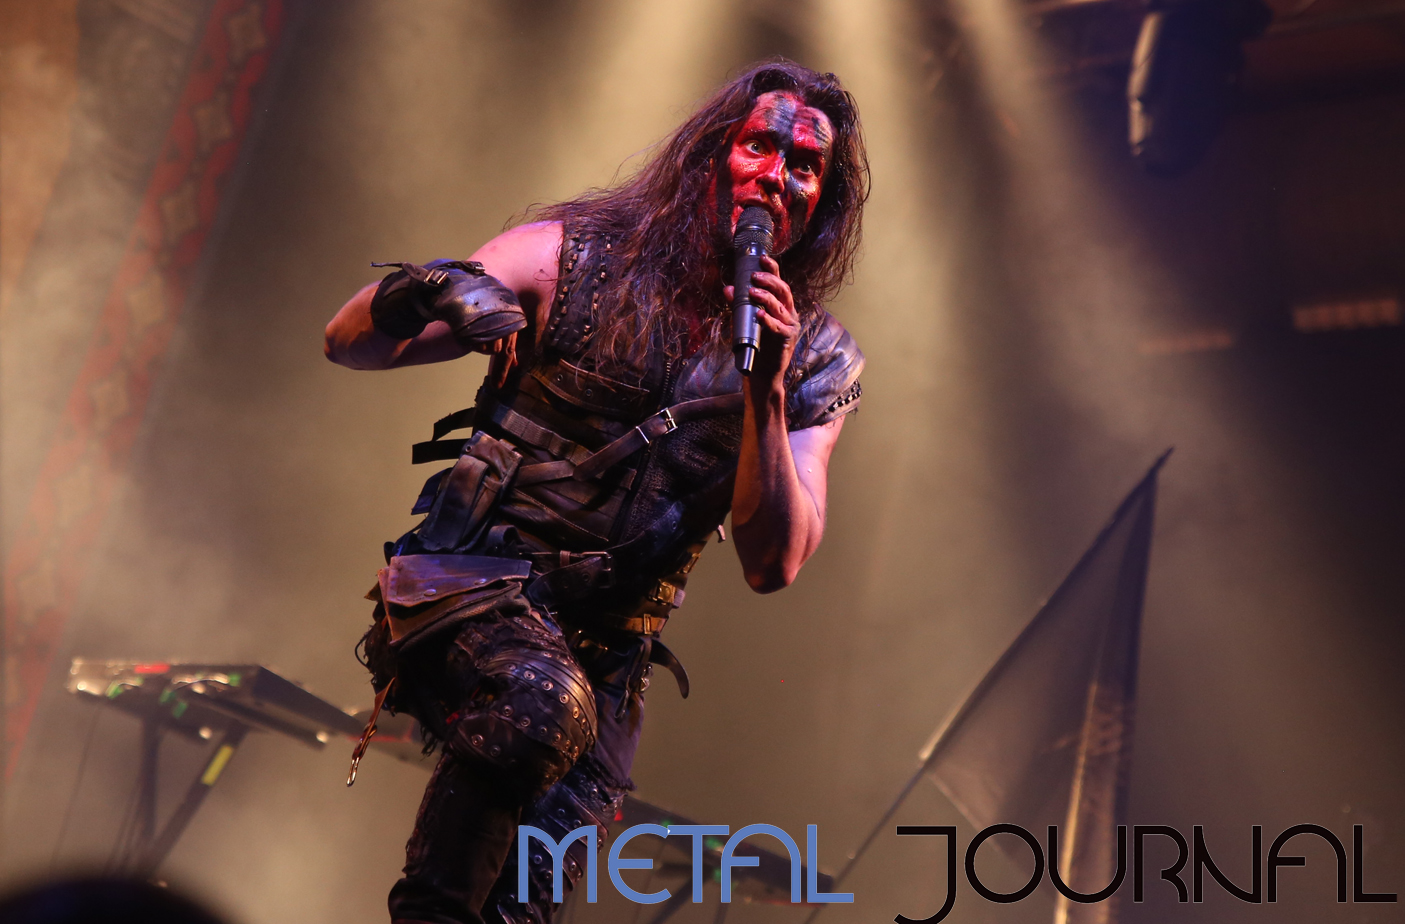 turisas metal journal bilbao 2019 pic 2